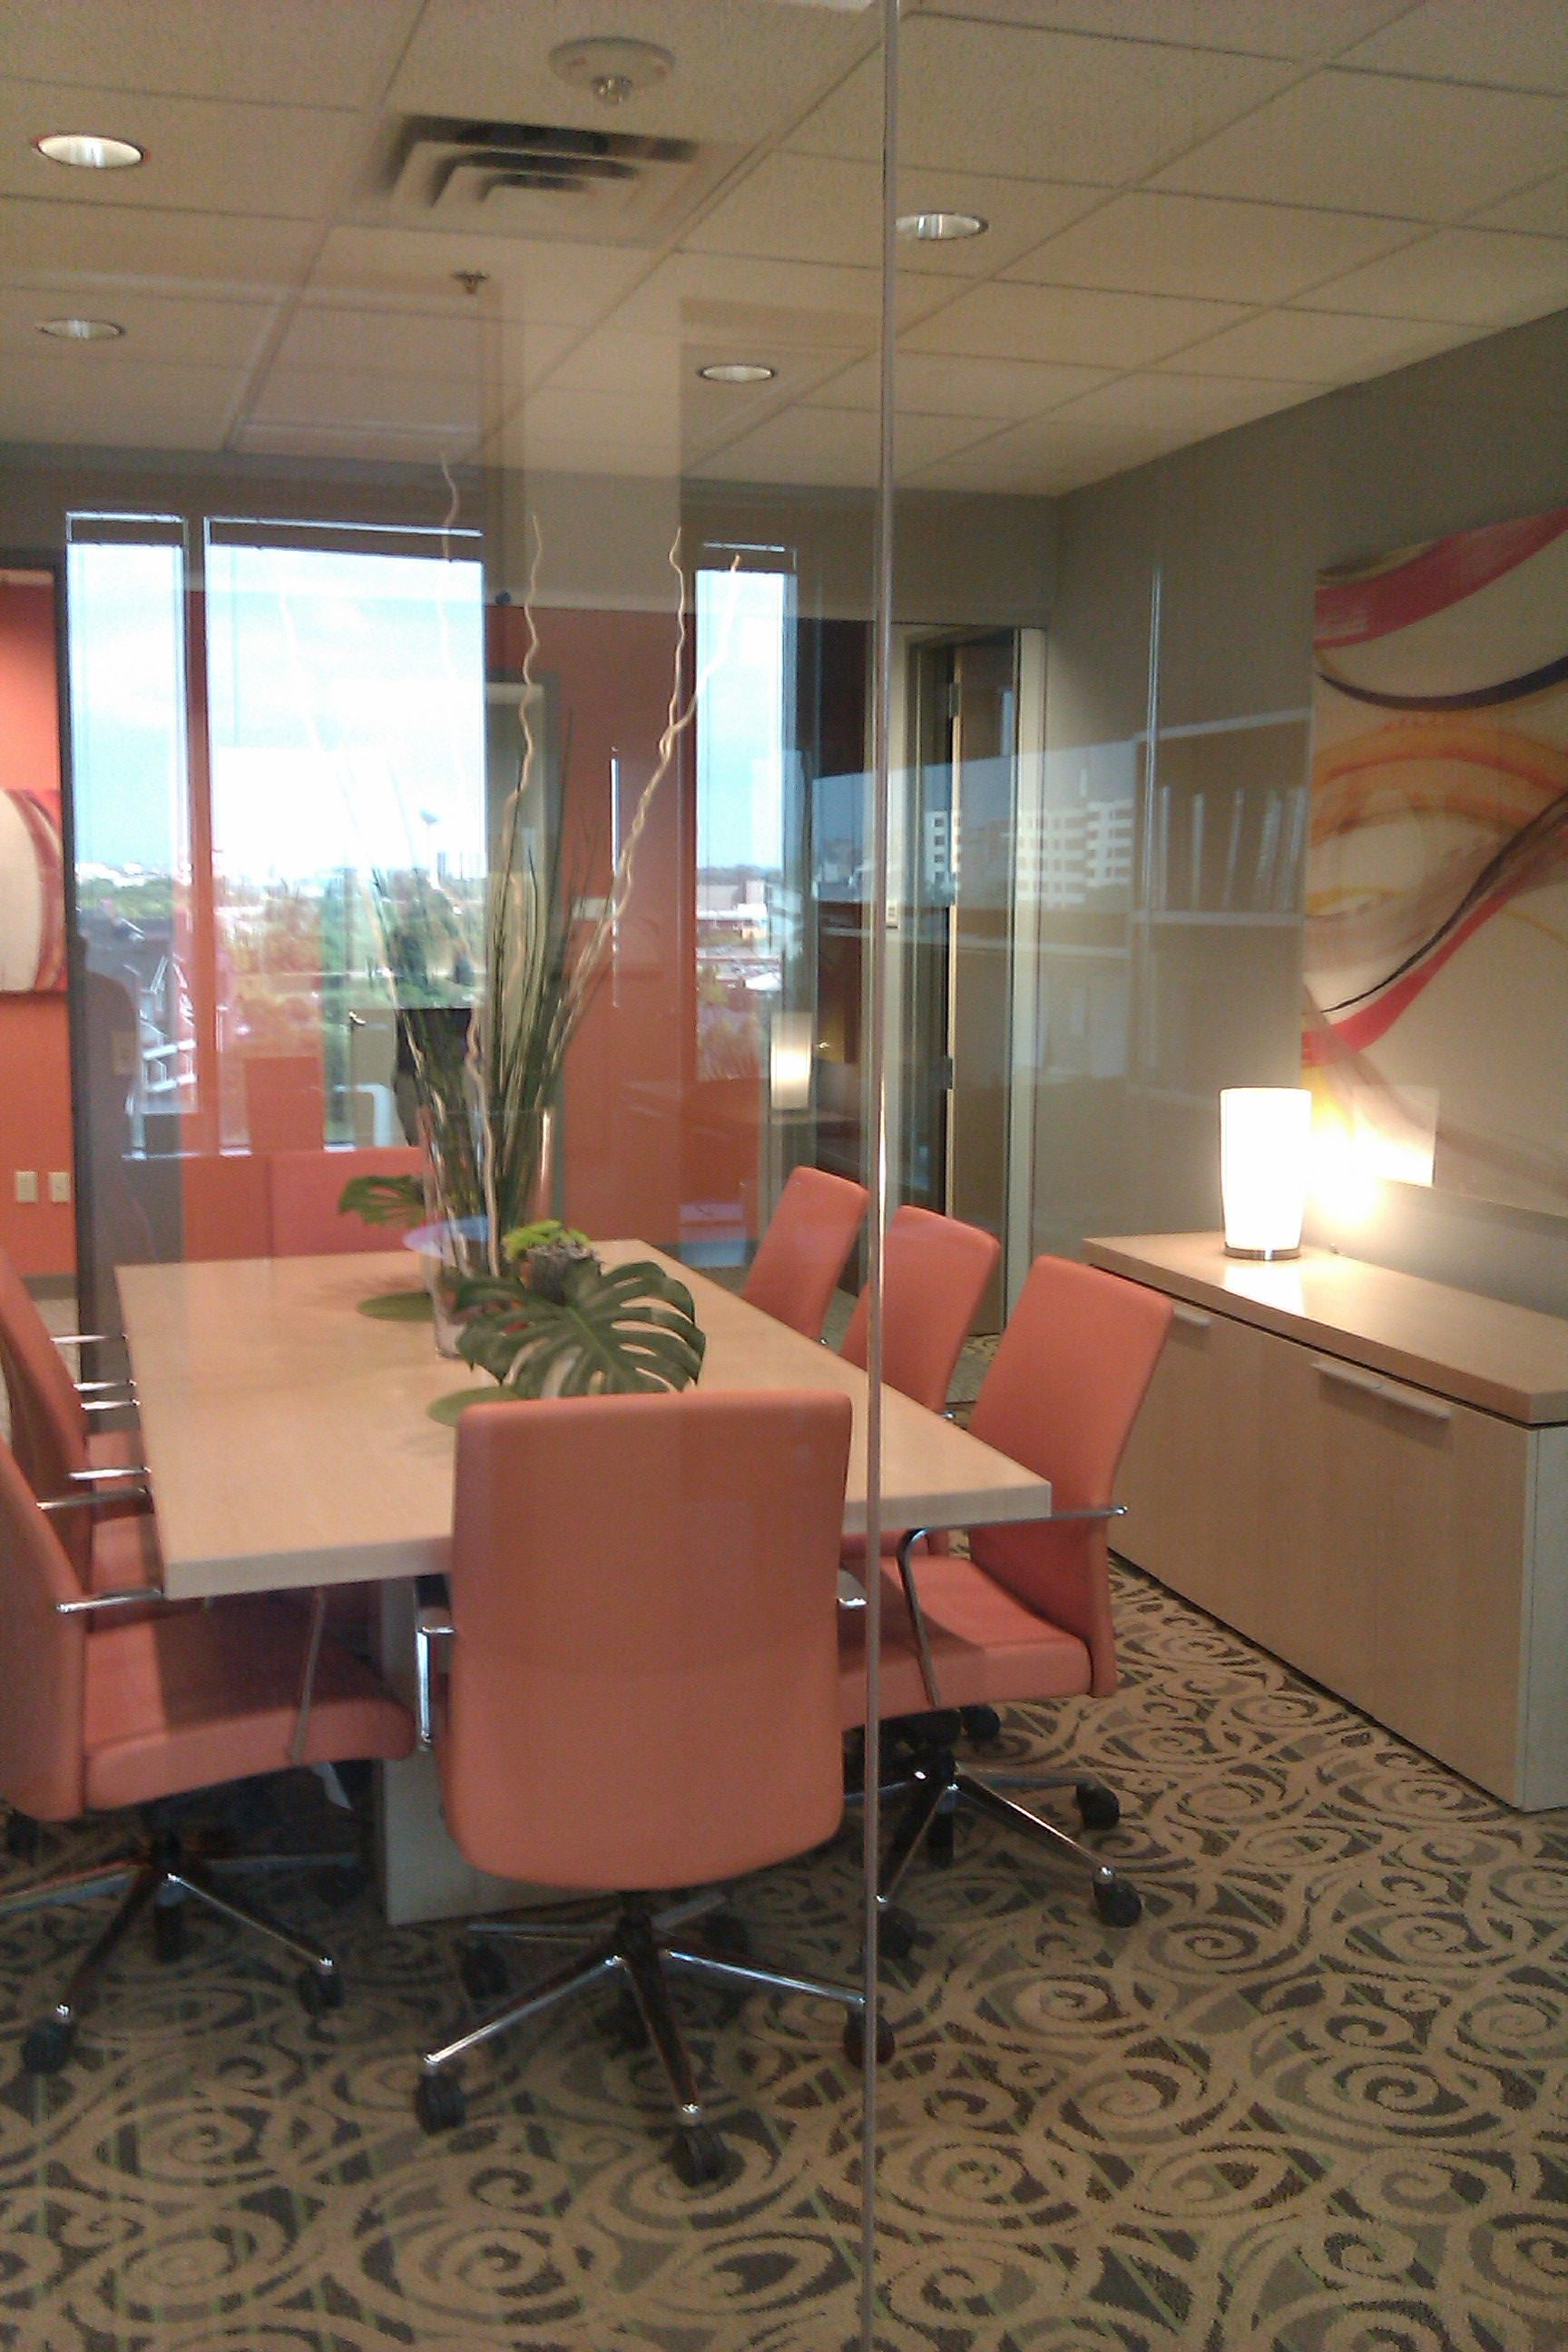 furnitureconference room pictures meetings office meeting. Conference Room..morning Meeting With Orange Juice! Designed By Home For A Change Furnitureconference Room Pictures Meetings Office R